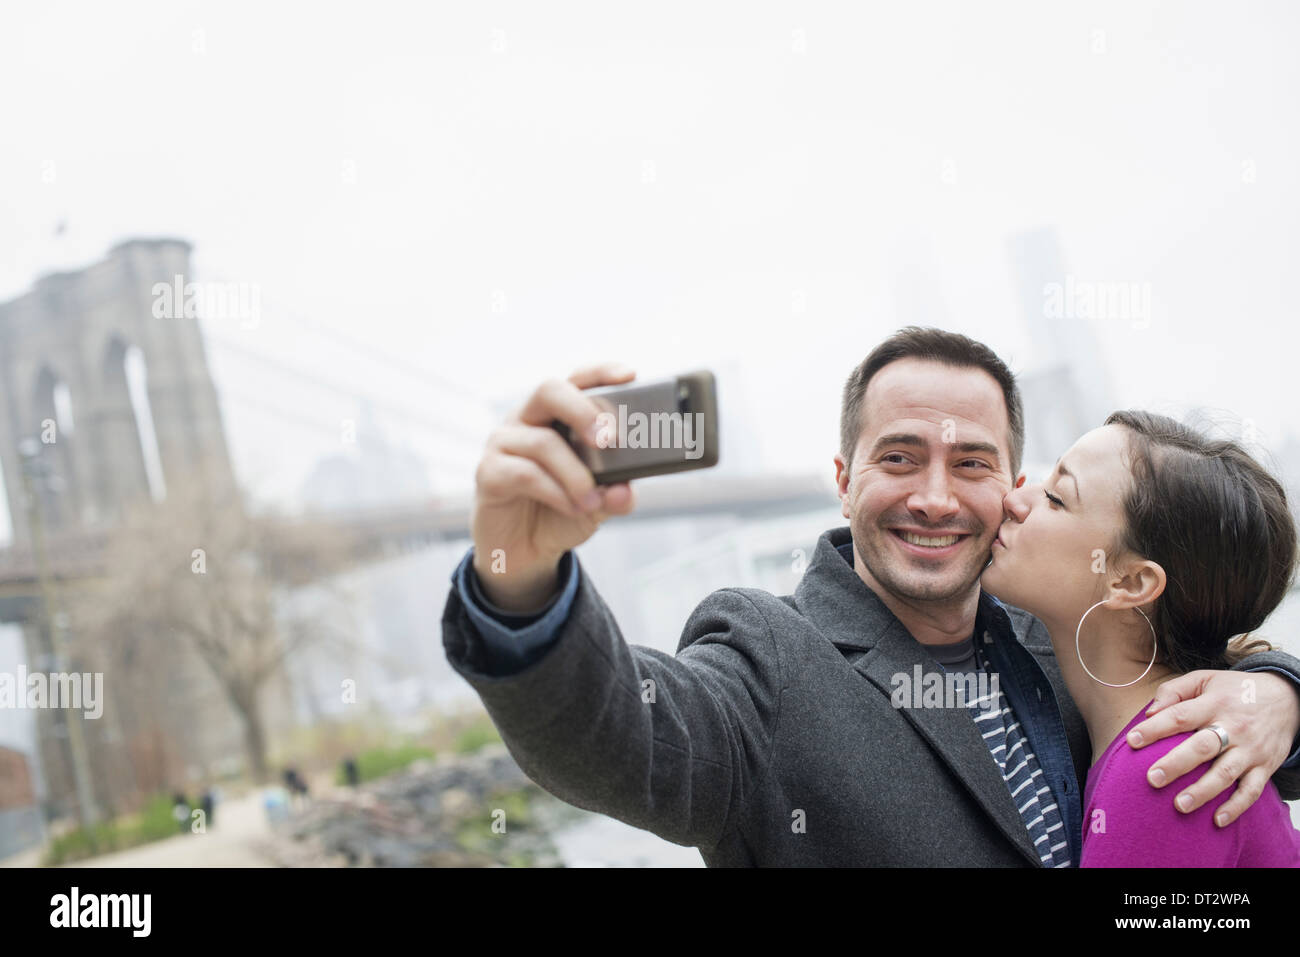 Brooklyn Bridge crossing over the East River A couple taking a picture with a phone a selfy of themselves - Stock Image